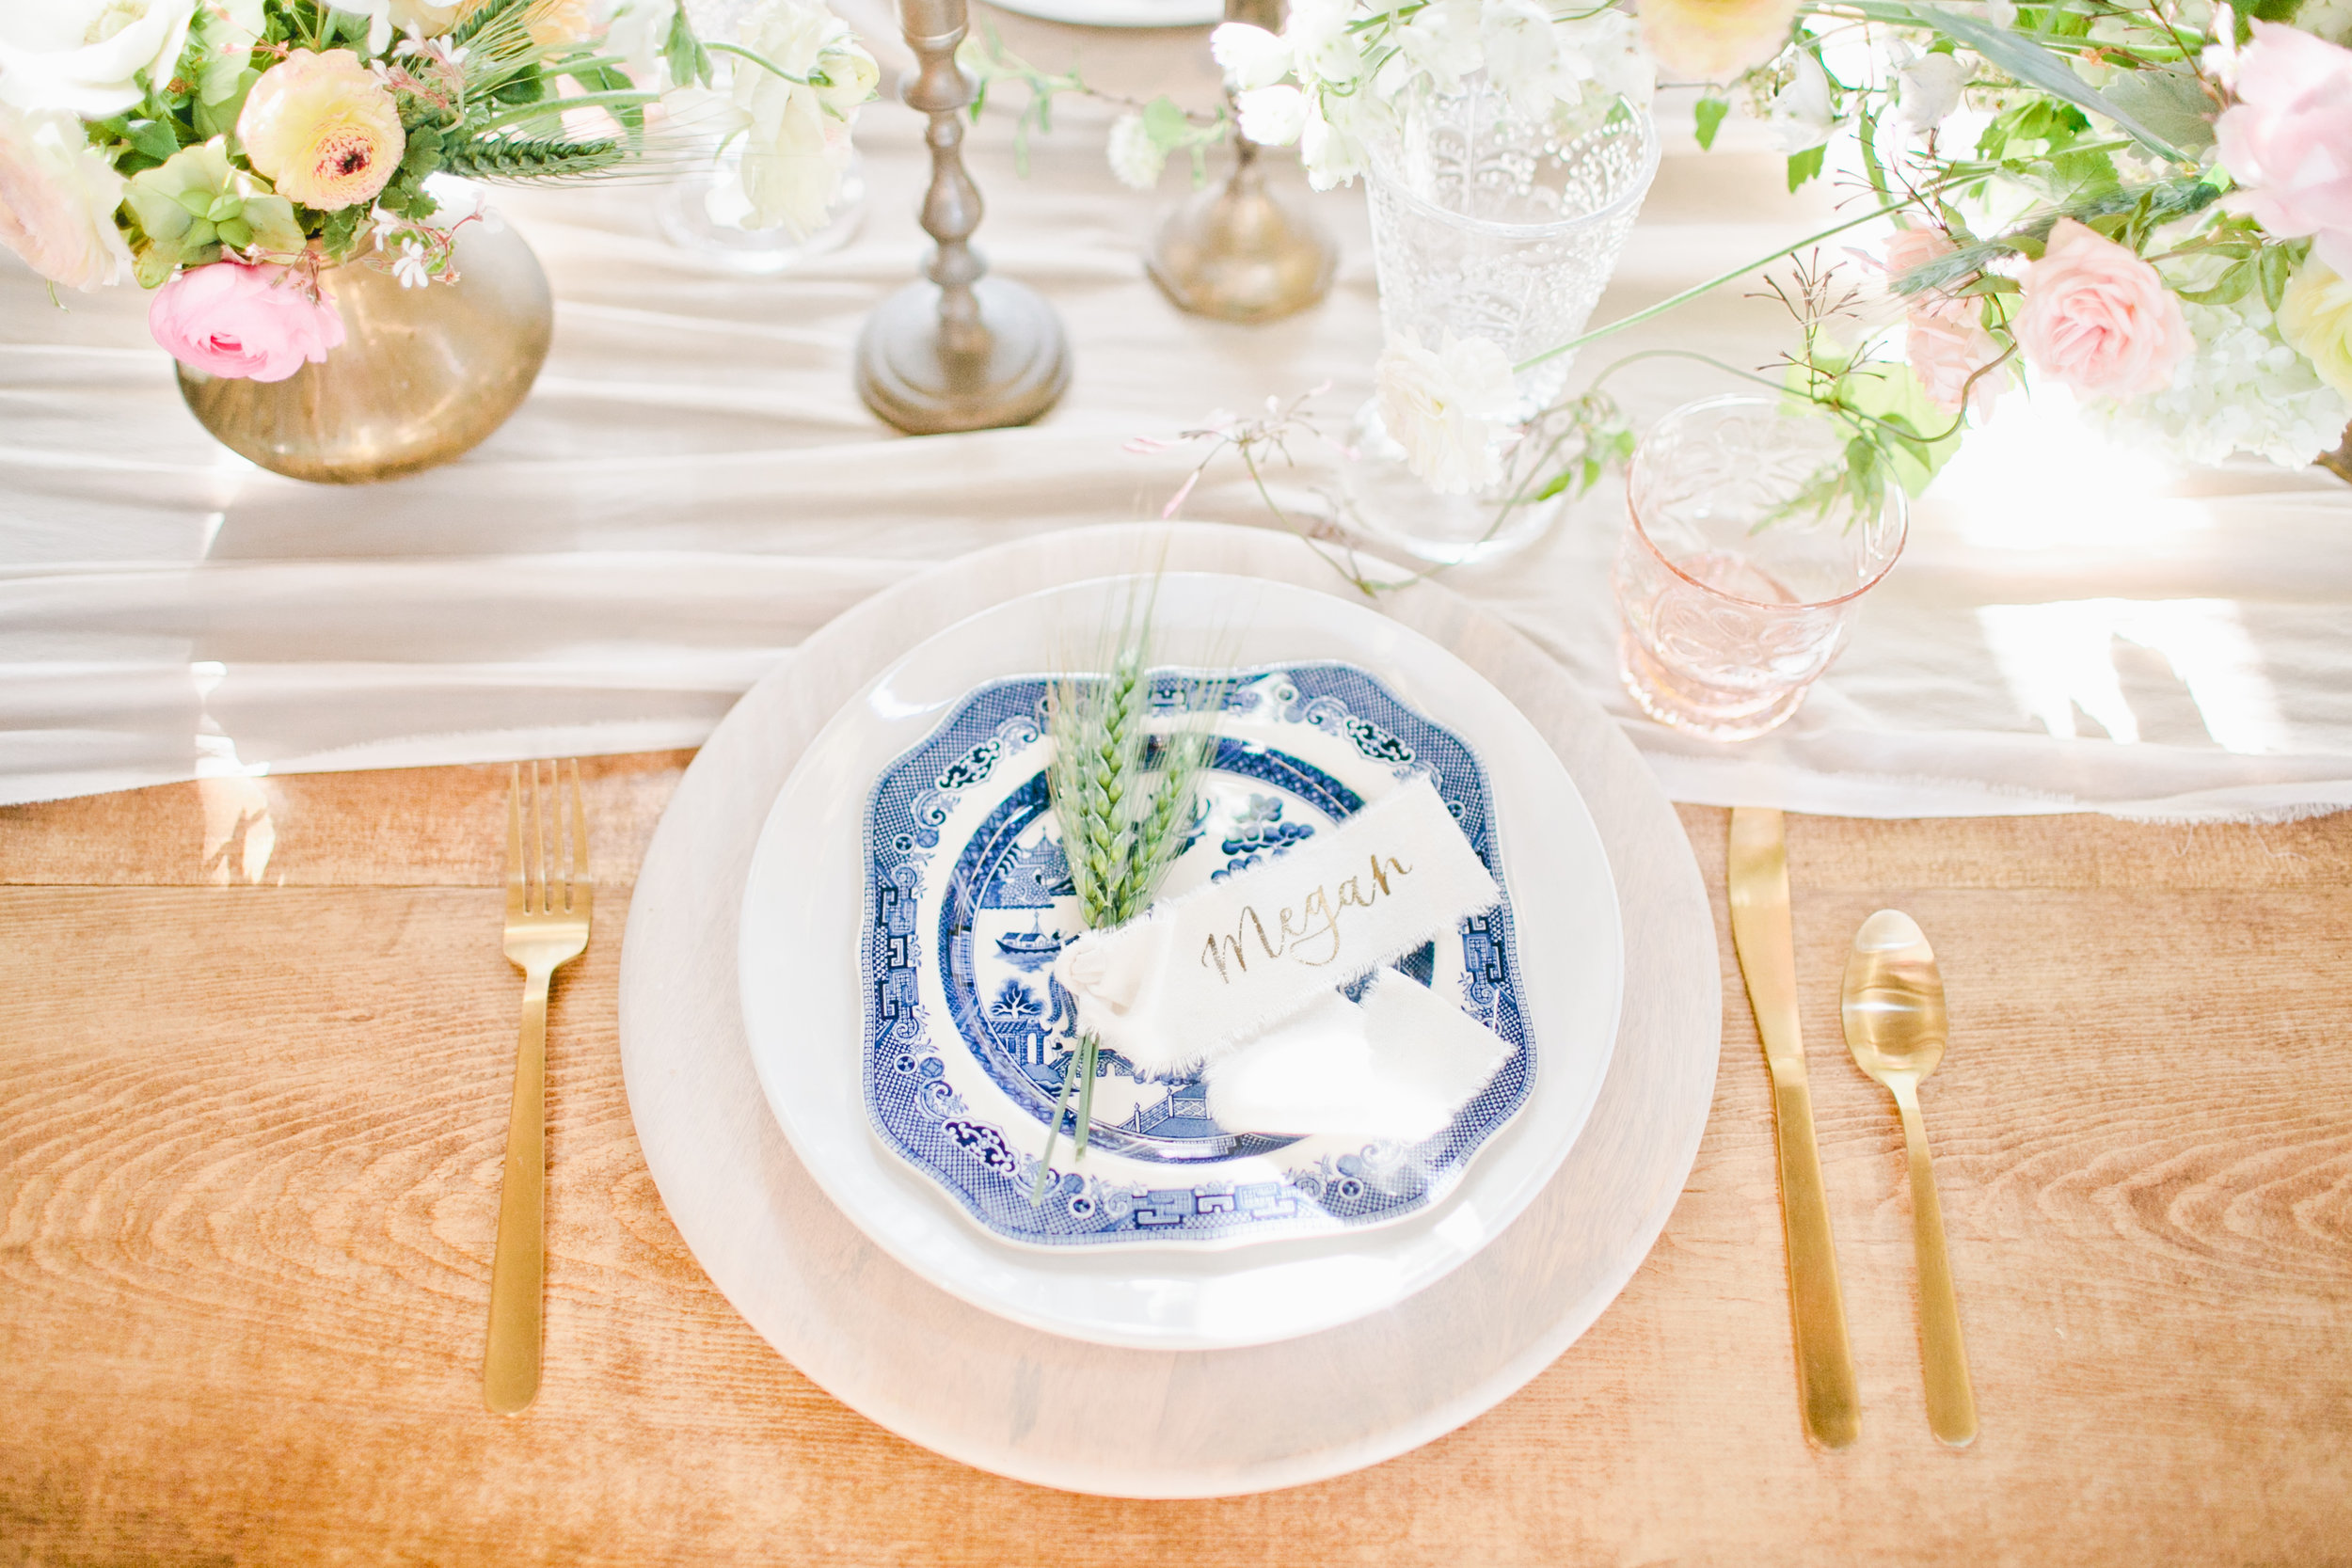 Soft & Natural Wedding Inspiration in a Wheat Field